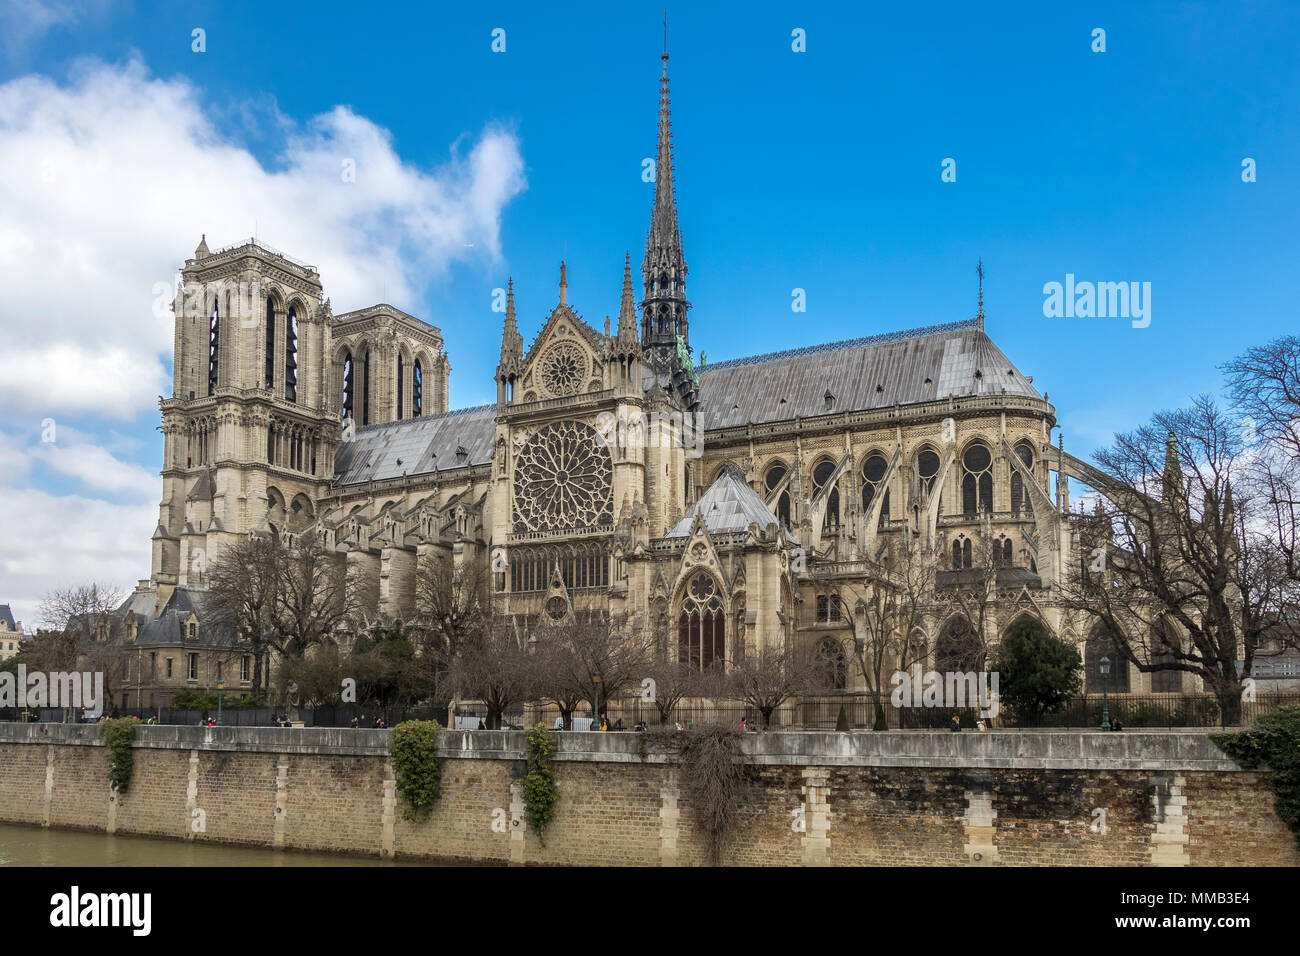 Notre Dame Cathedral from Quai de Montebello, Paris, France - Stock Image